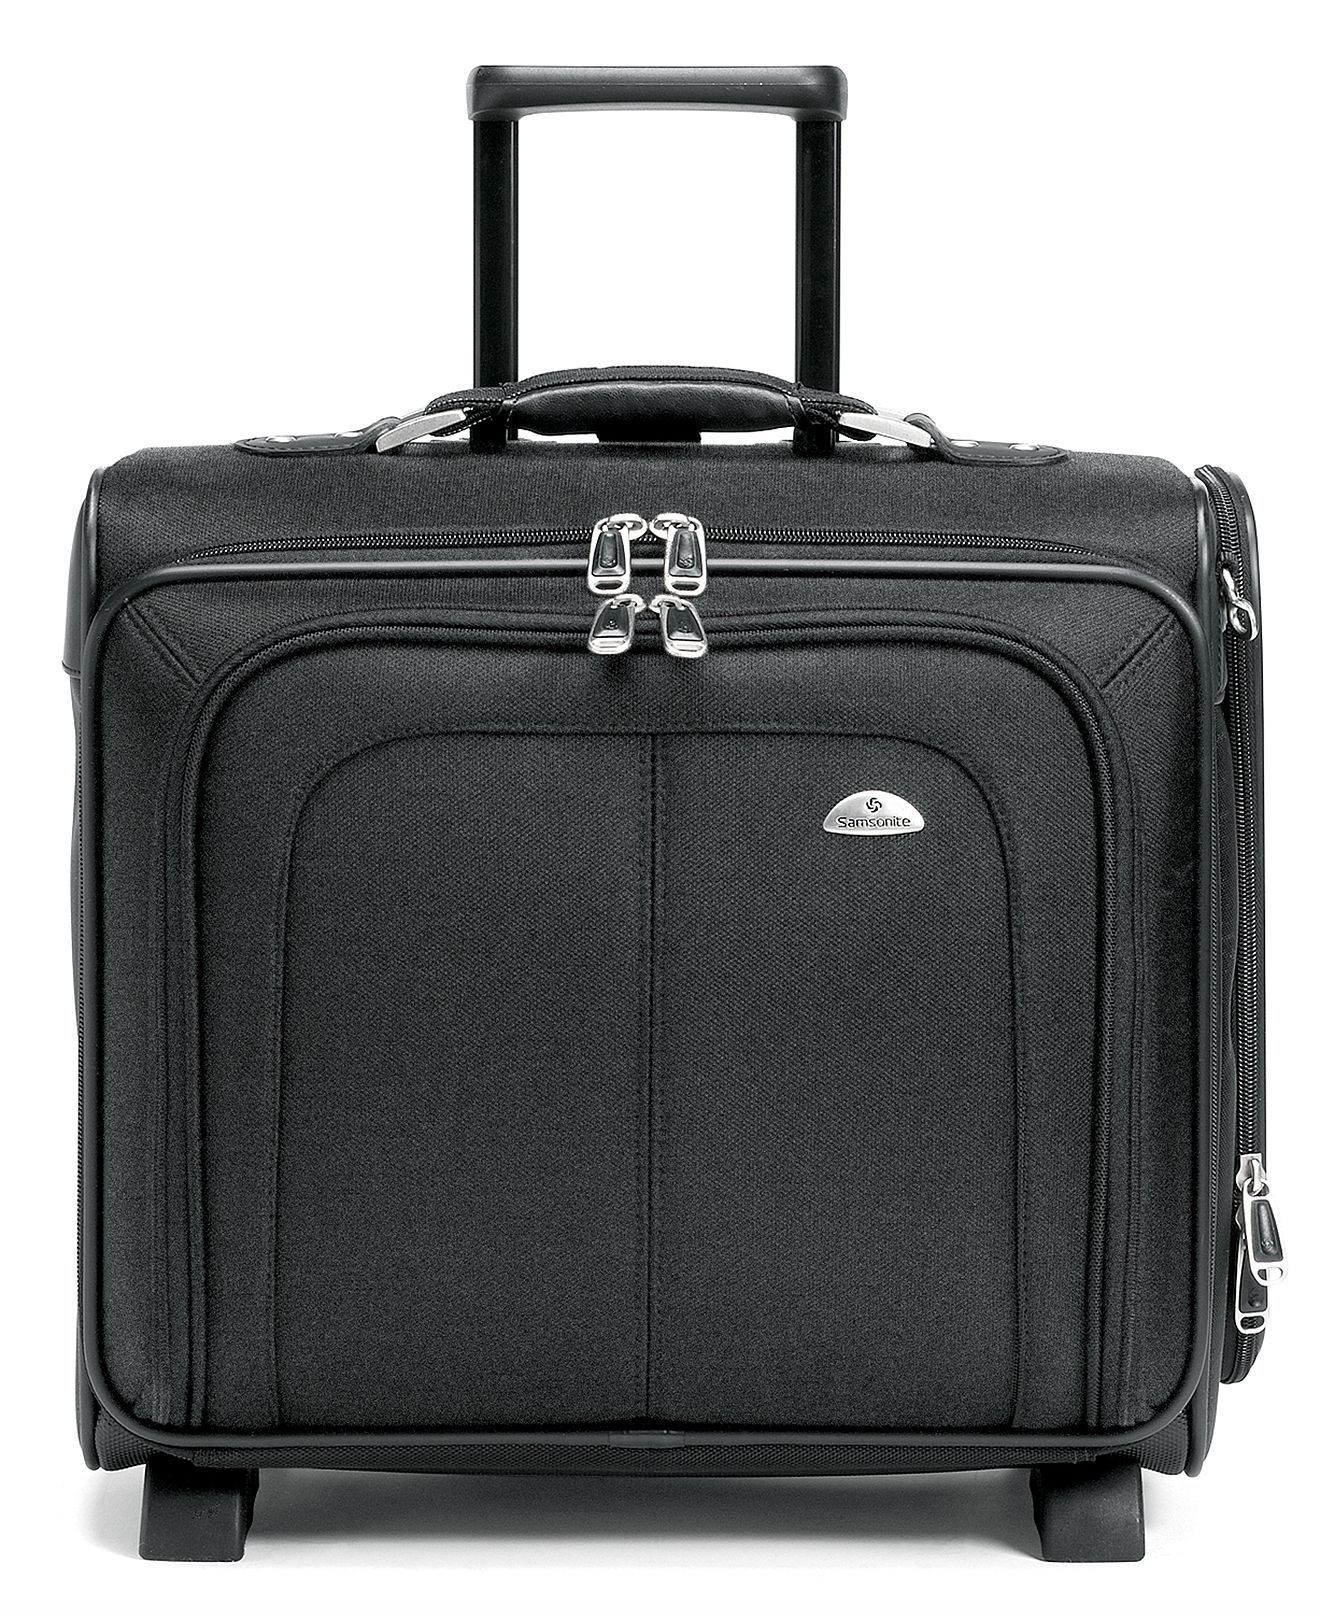 239e500162 Samsonite Rolling Sideloader Mobile Office Laptop Briefcase - Business    Laptop Bags - luggage - Macy s